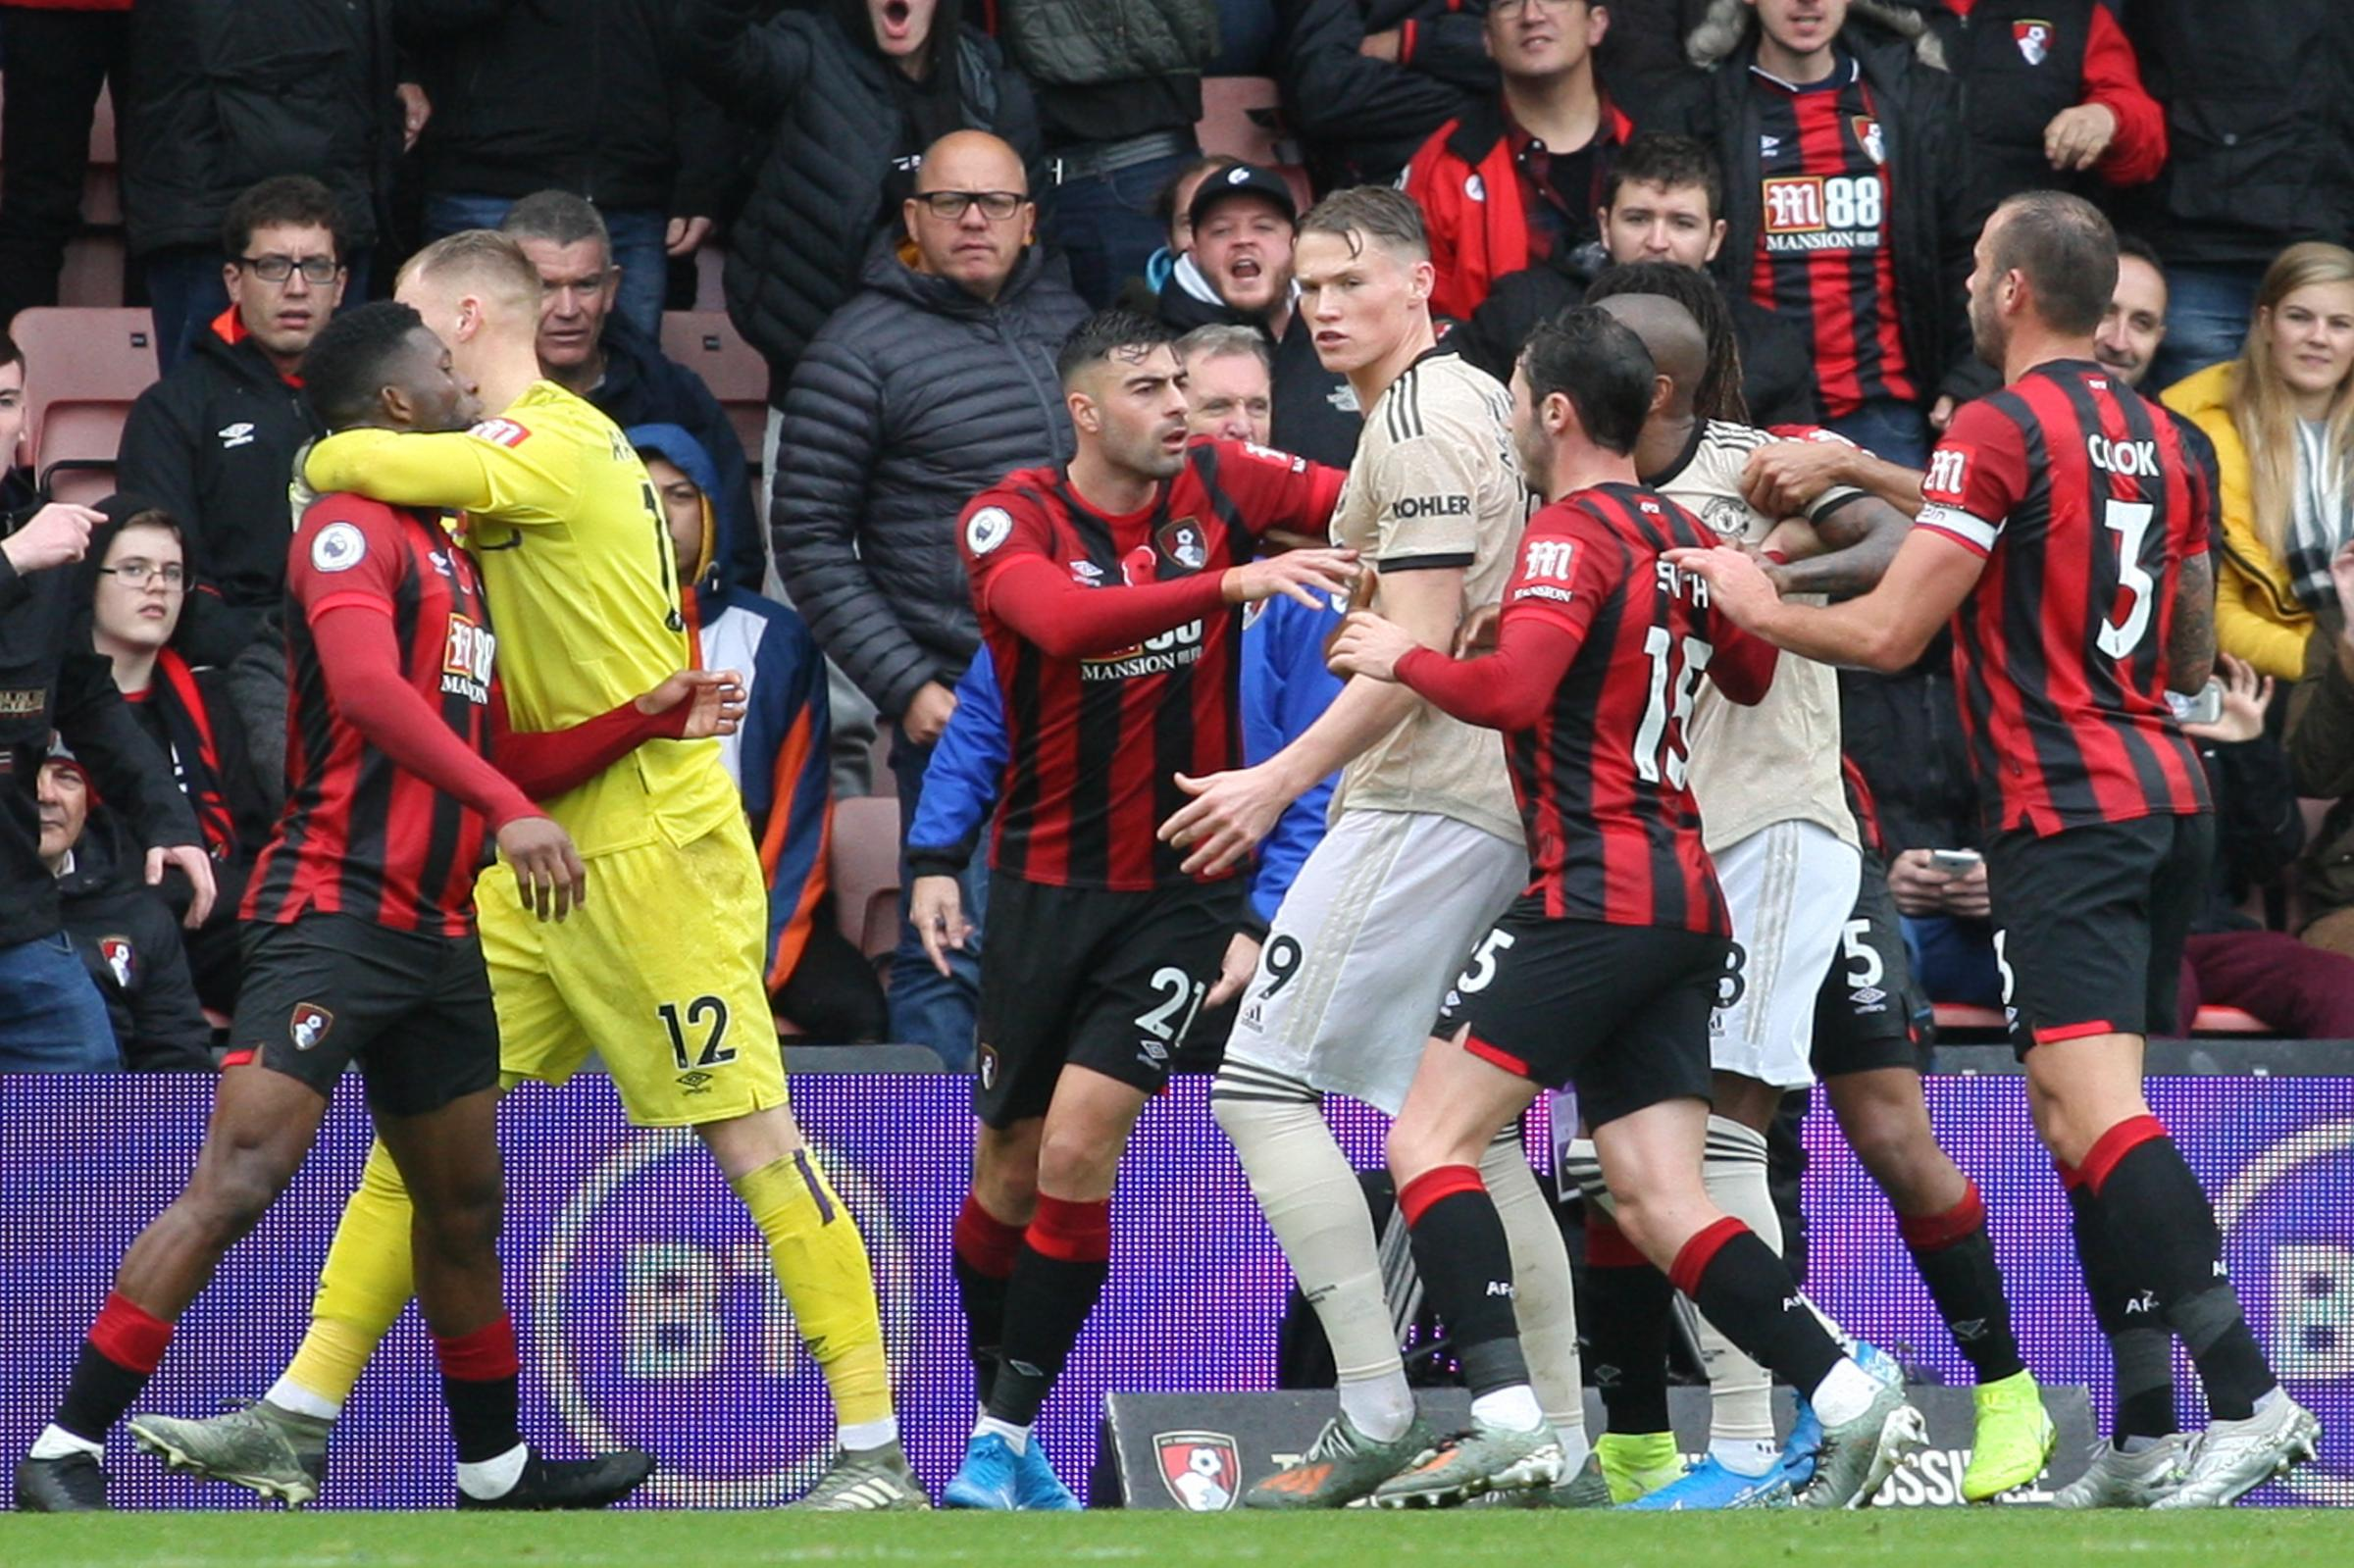 'I wouldn't change a thing' - Steve Cook praises suspended Jefferson Lerma's style but admits he will be a 'big miss' for AFC Bournemouth